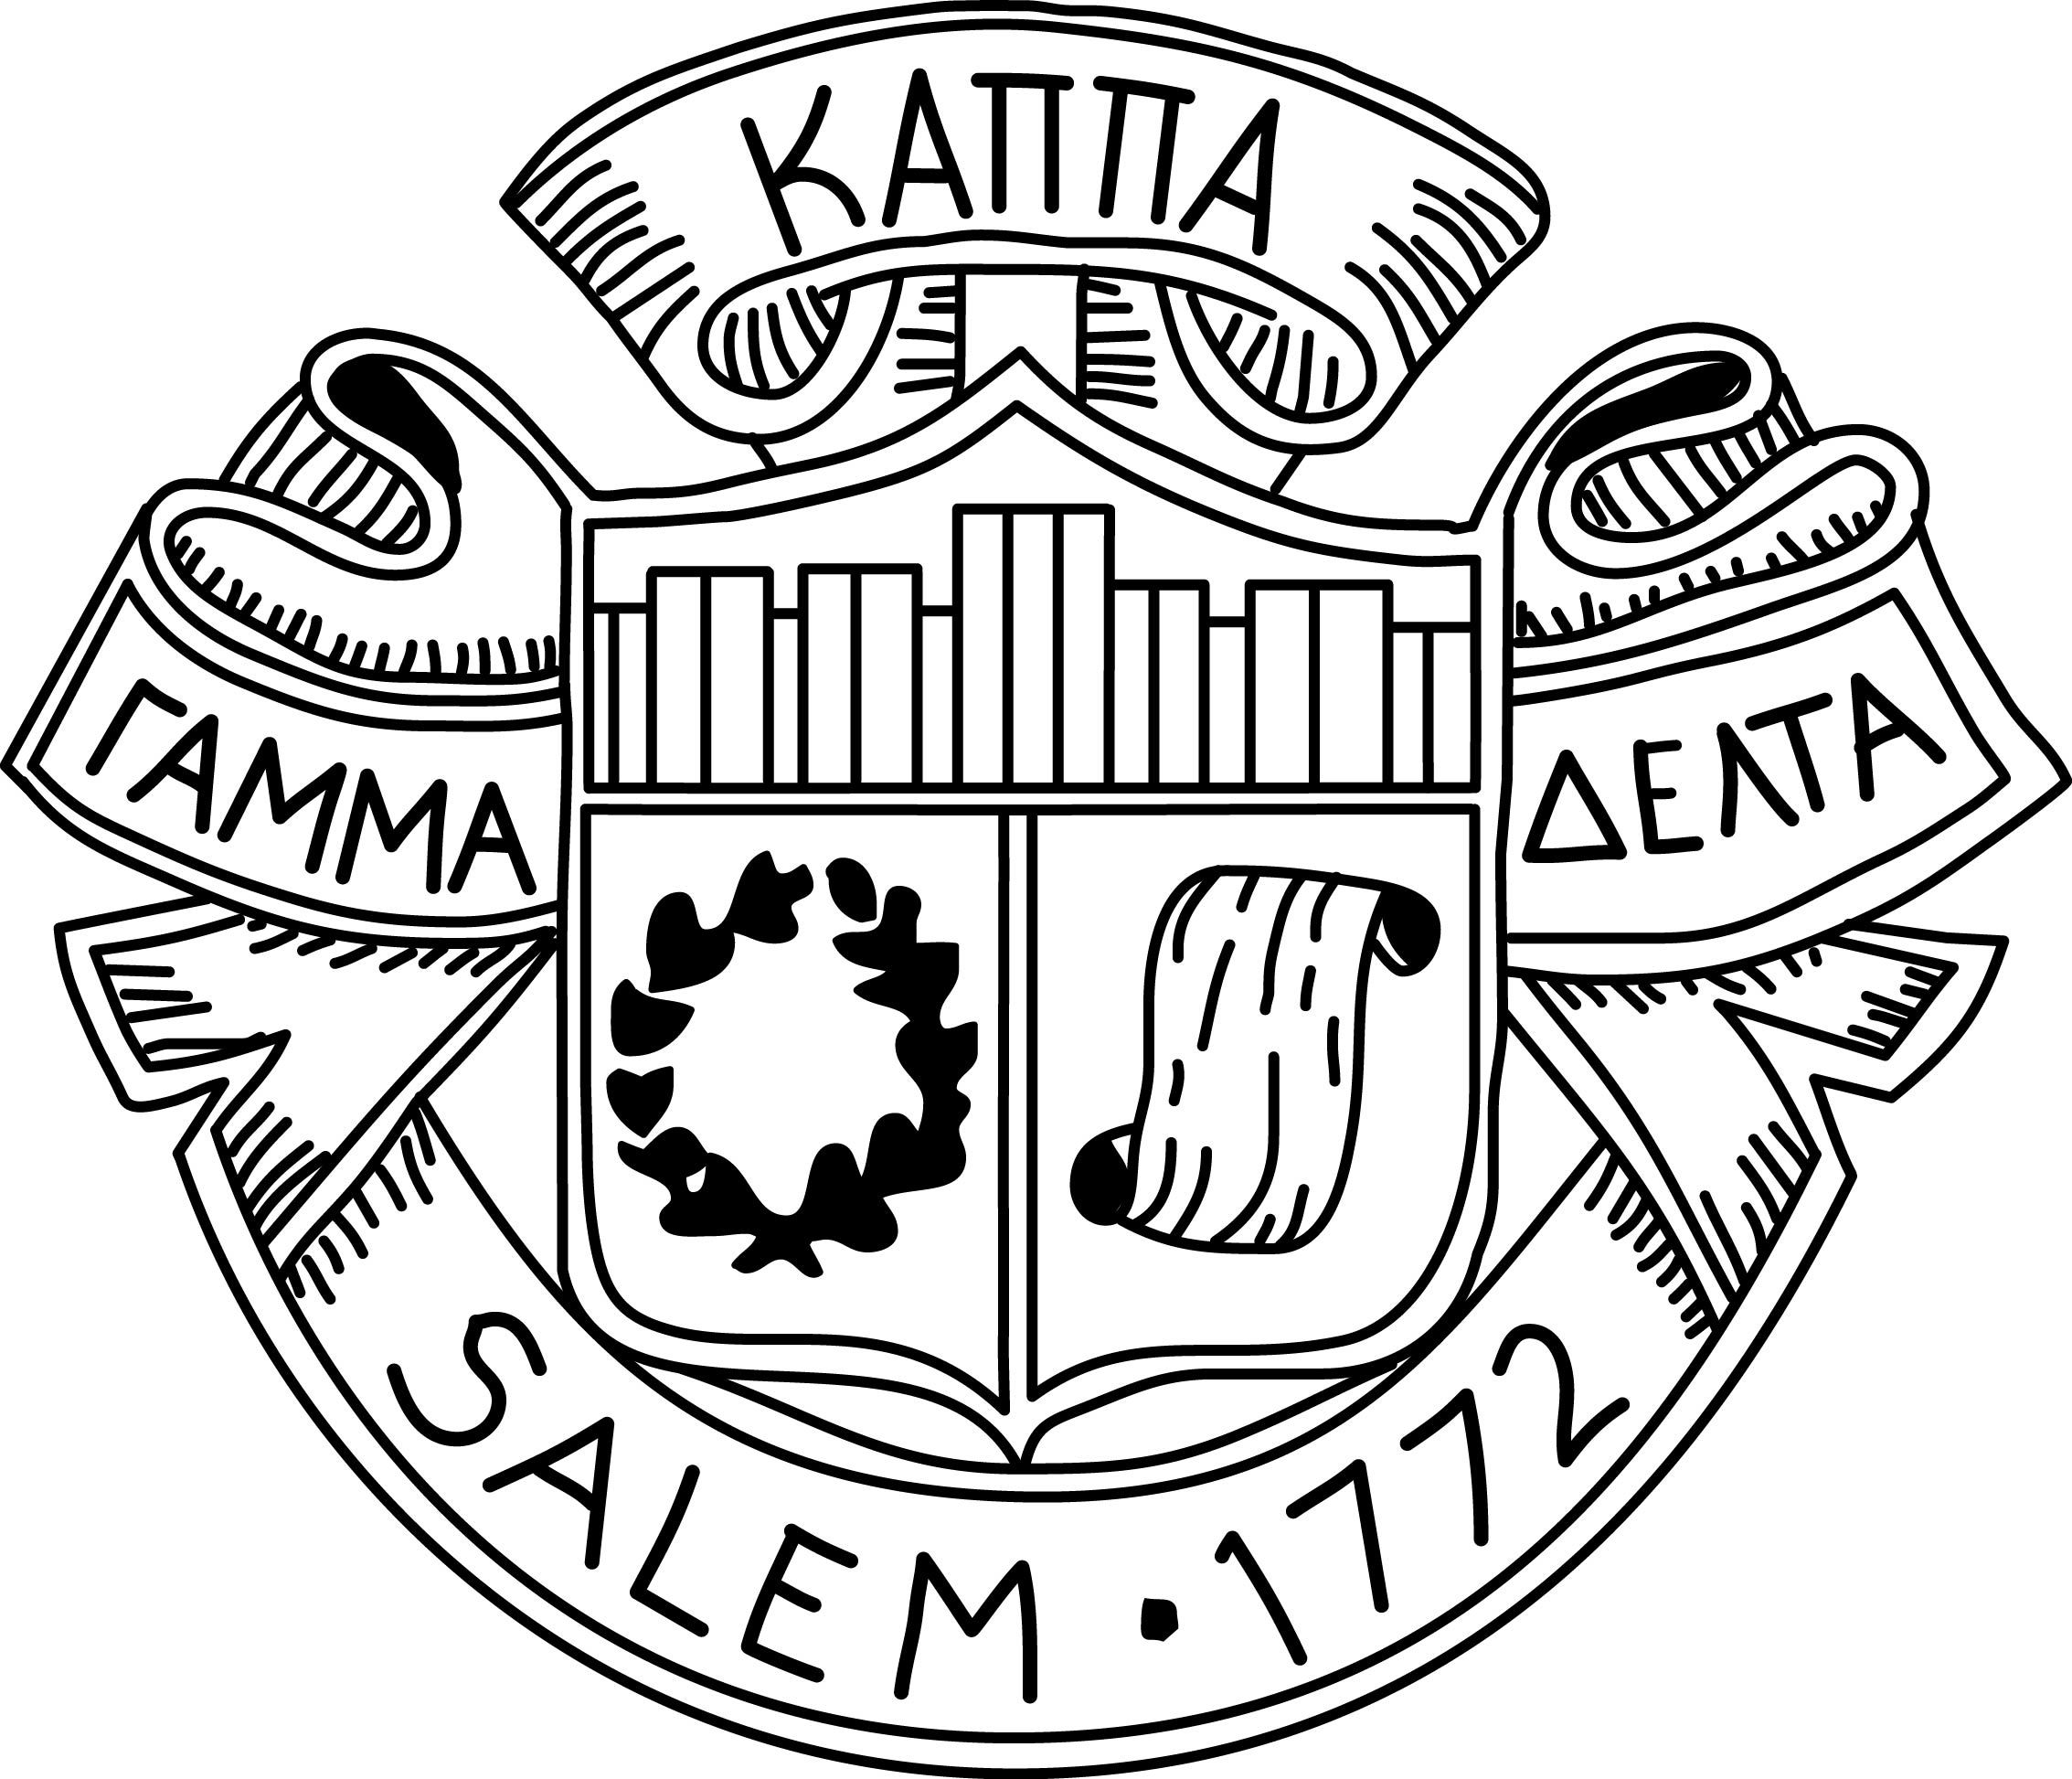 salem 1772 seal in black and white